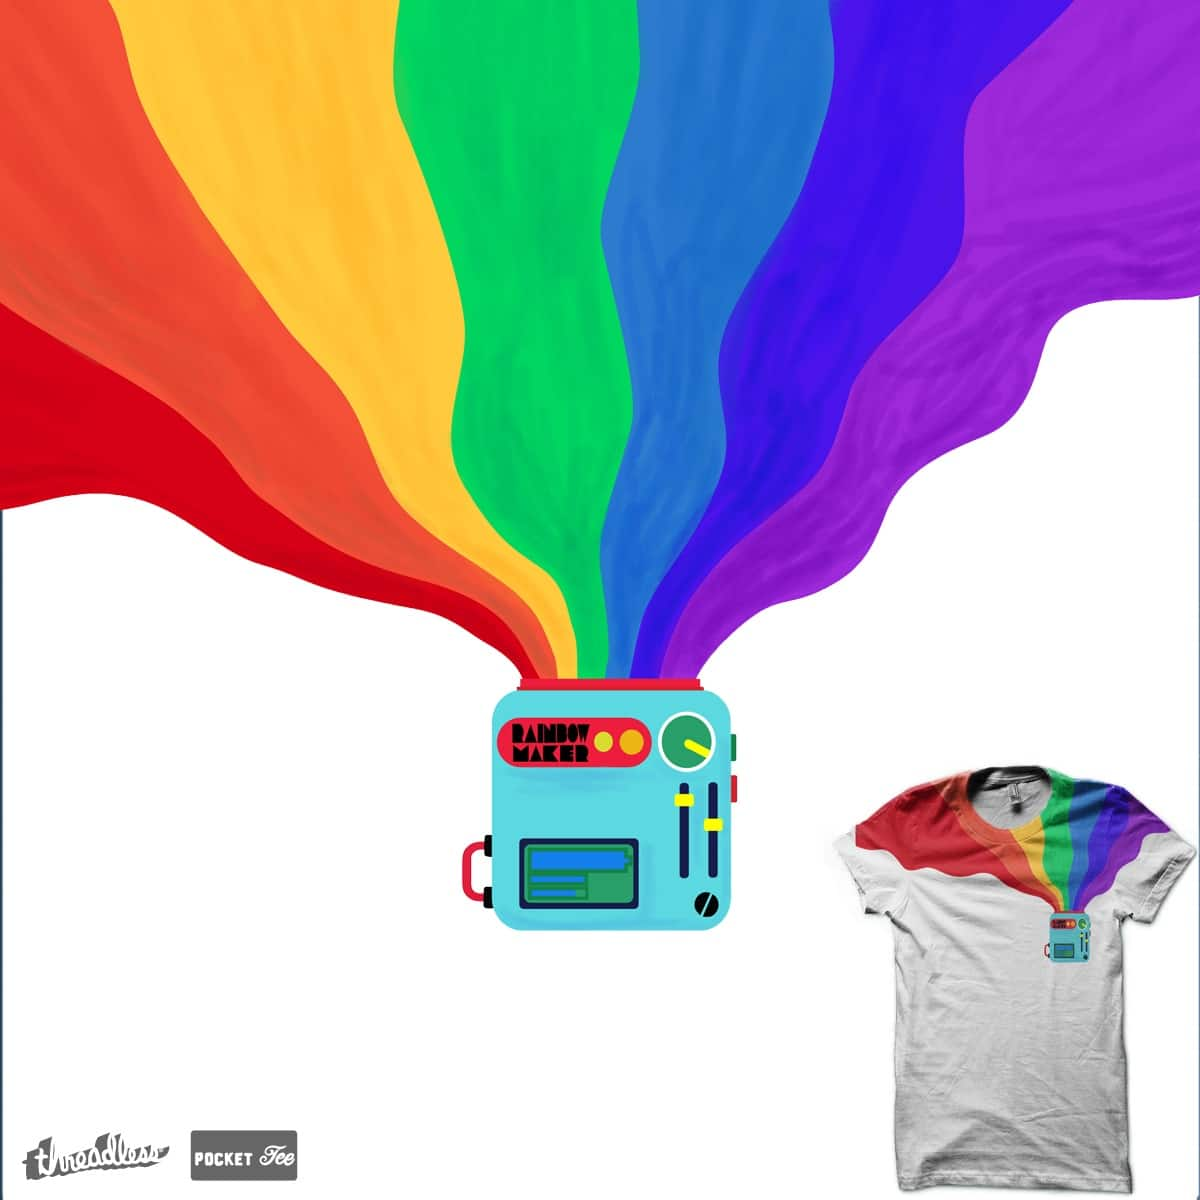 I need a pocket rainbow-maker to stay fabulous by BlueHairedCat on Threadless